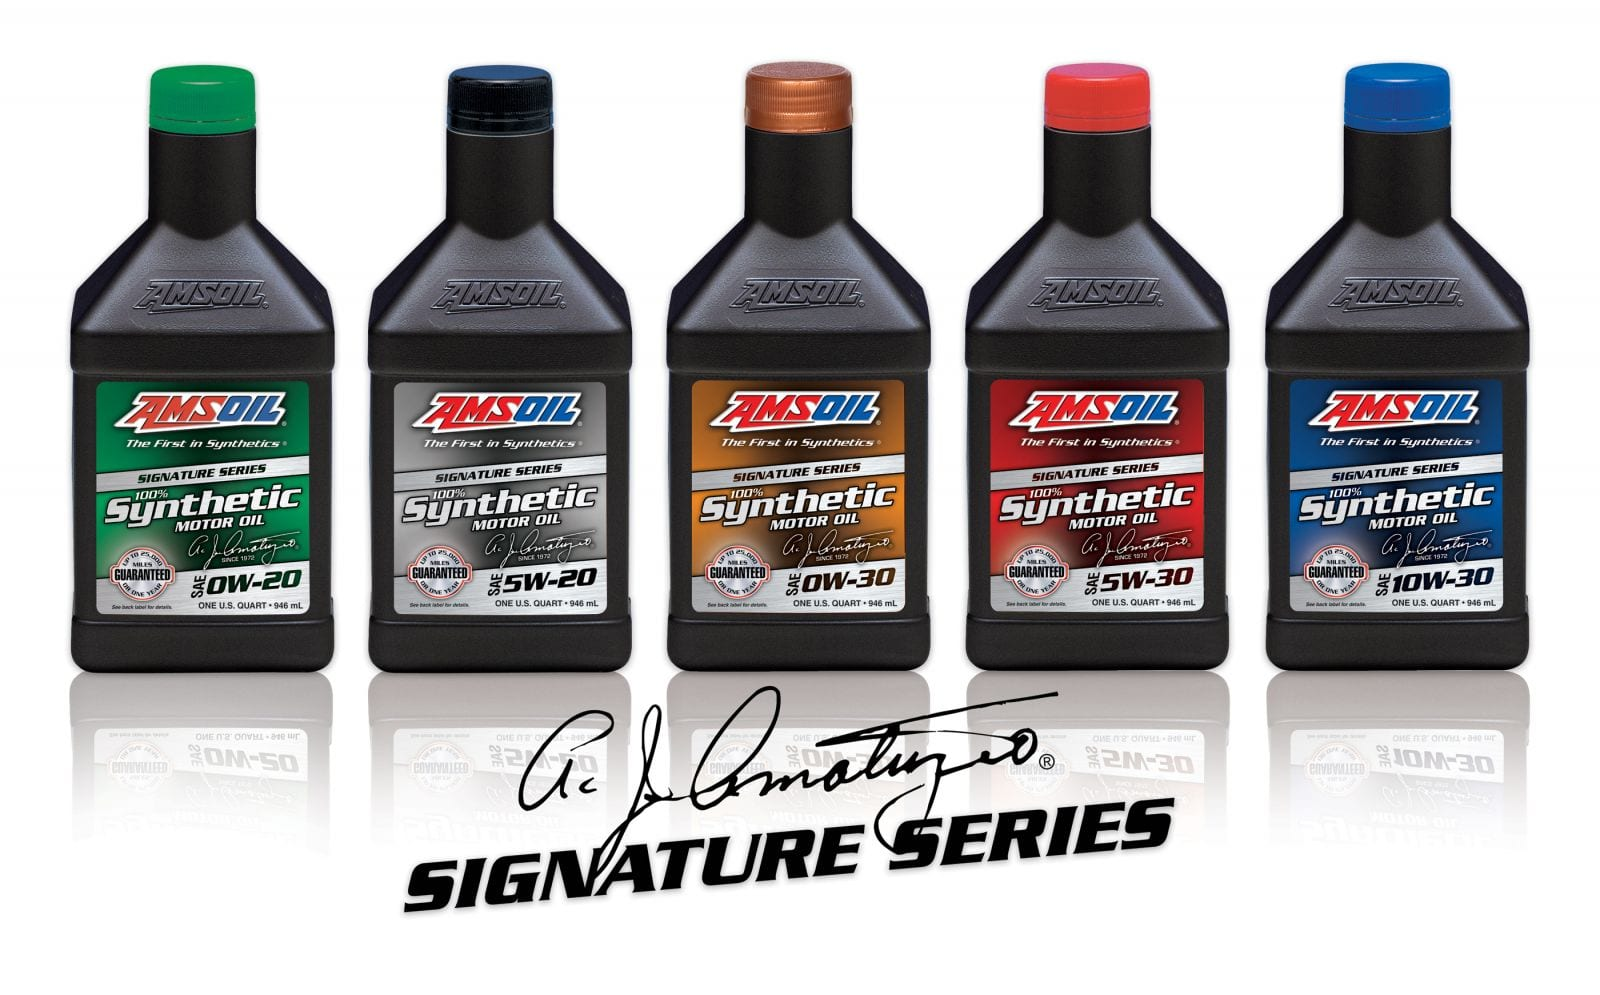 Best value synthetics for Amsoil signature series synthetic motor oil